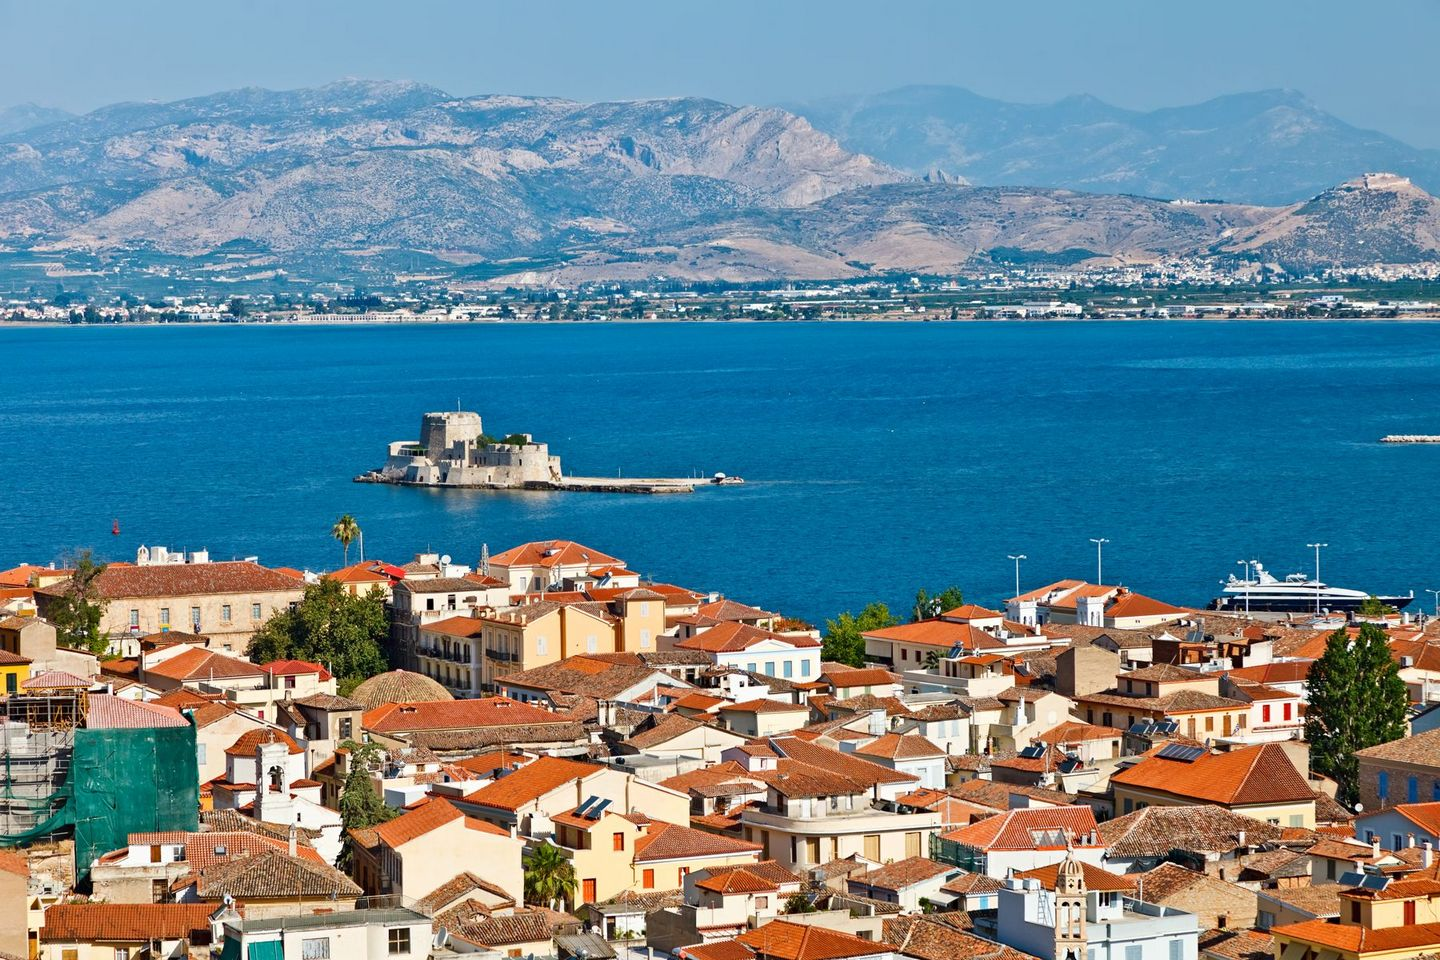 Nafplion Bourgi, Greece